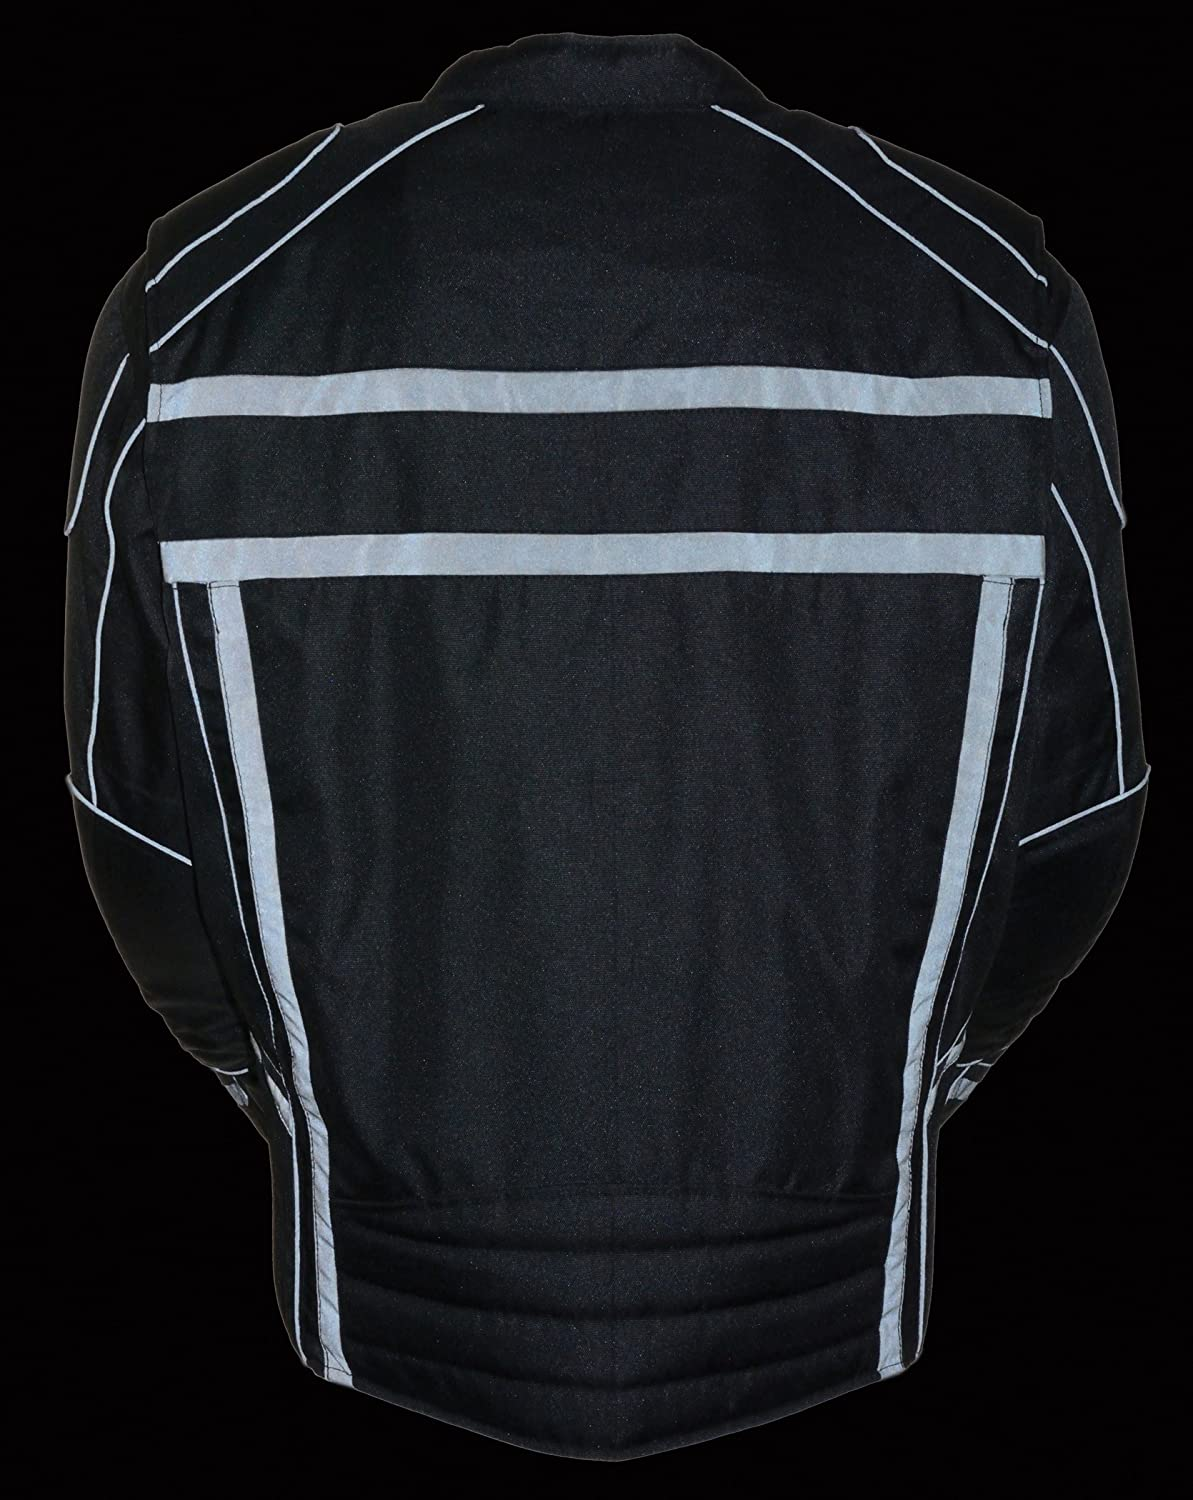 Milwaukee Performance Mens Vented Textile Jacket with High Visibility Reflective Black, Large 1 Pack